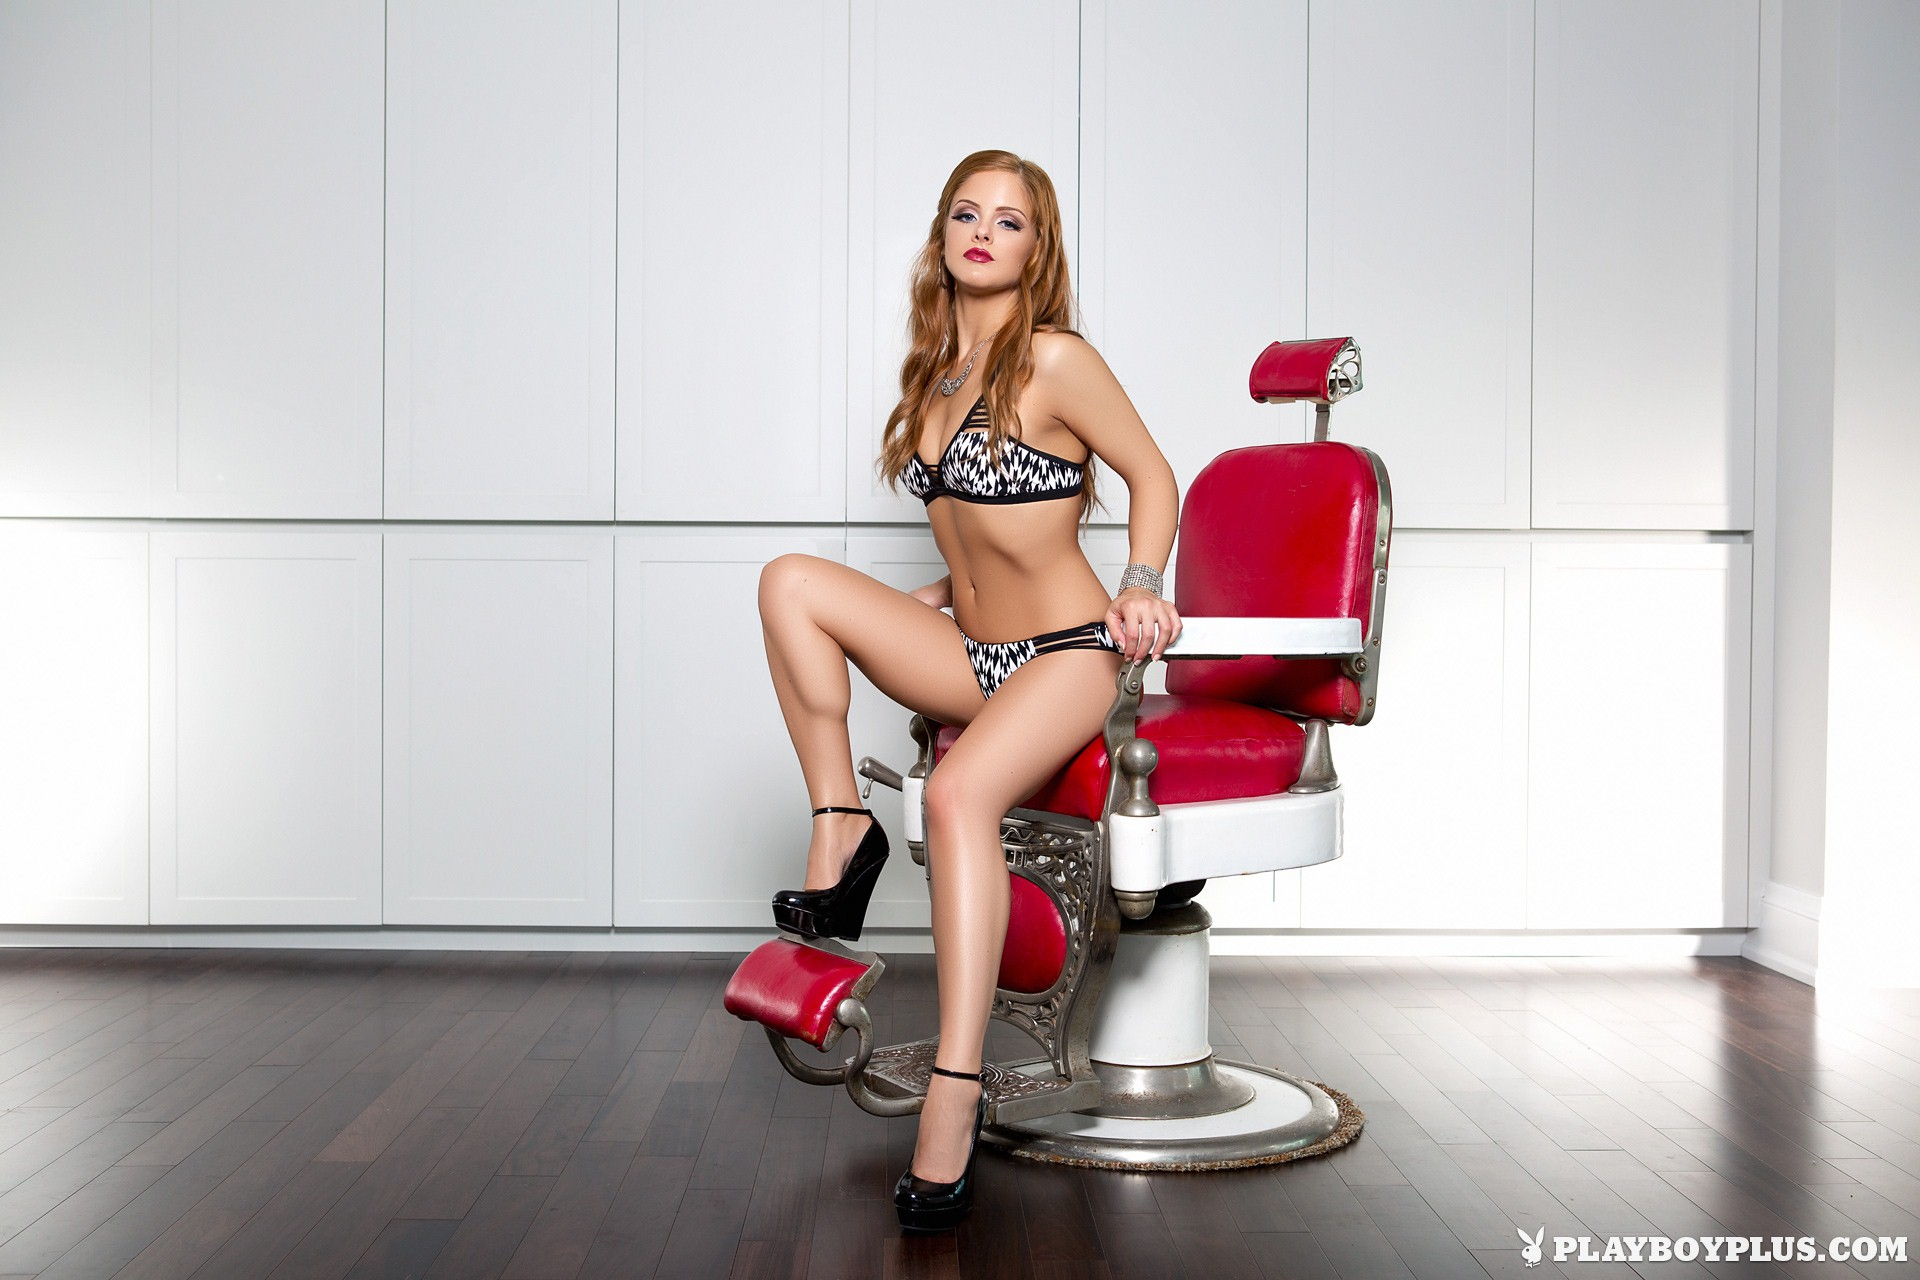 Josée Lanue nude in Barber's Chair for Playboy